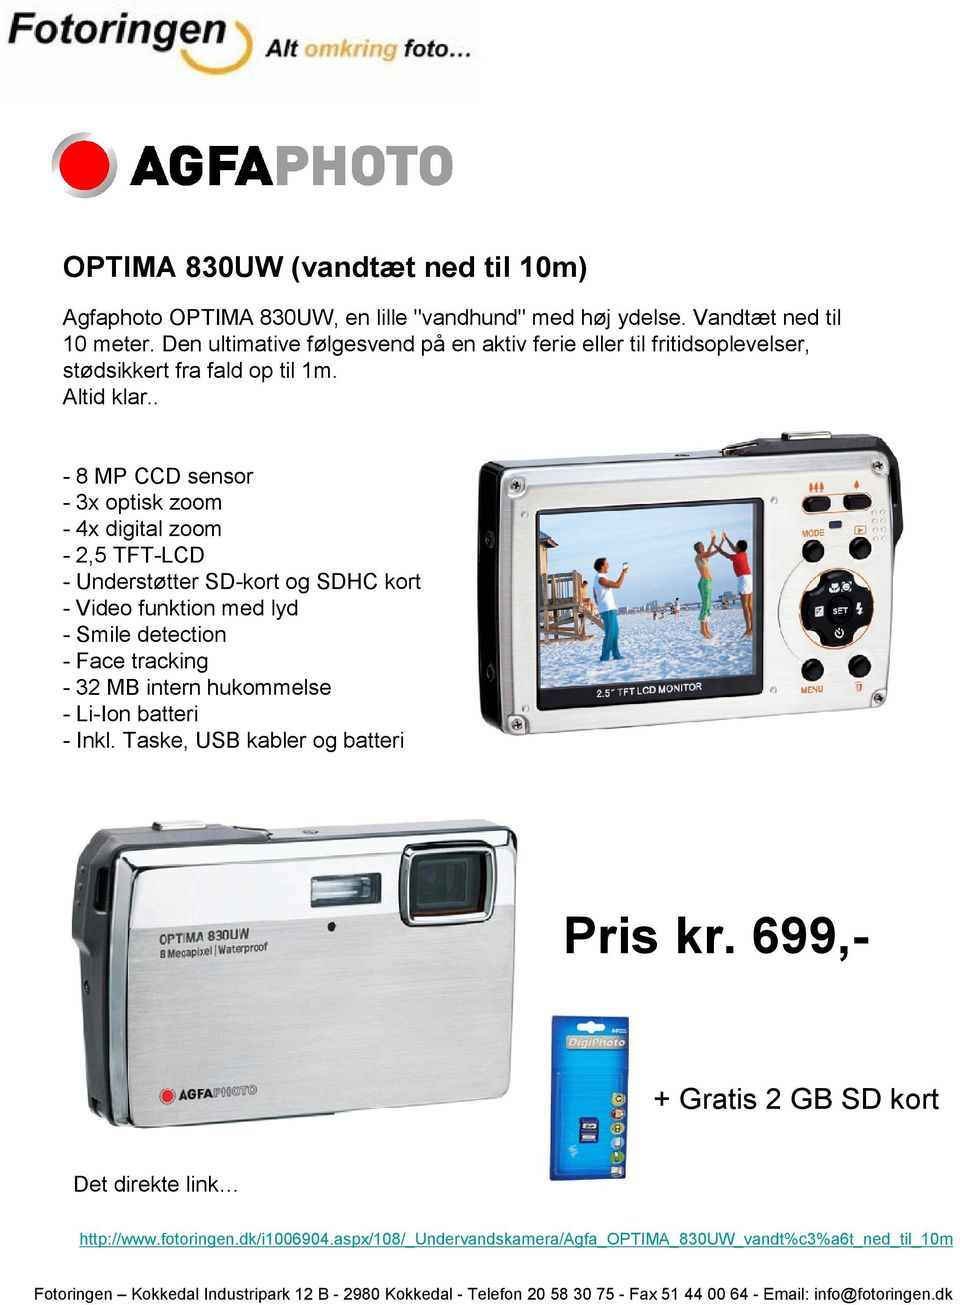 . - 8 MP CCD sensor - 3x optisk zoom - 4x digital zoom - 2,5 TFT-LCD - Understøtter SD-kort og SDHC kort - Video funktion med lyd - Smile detection - Face